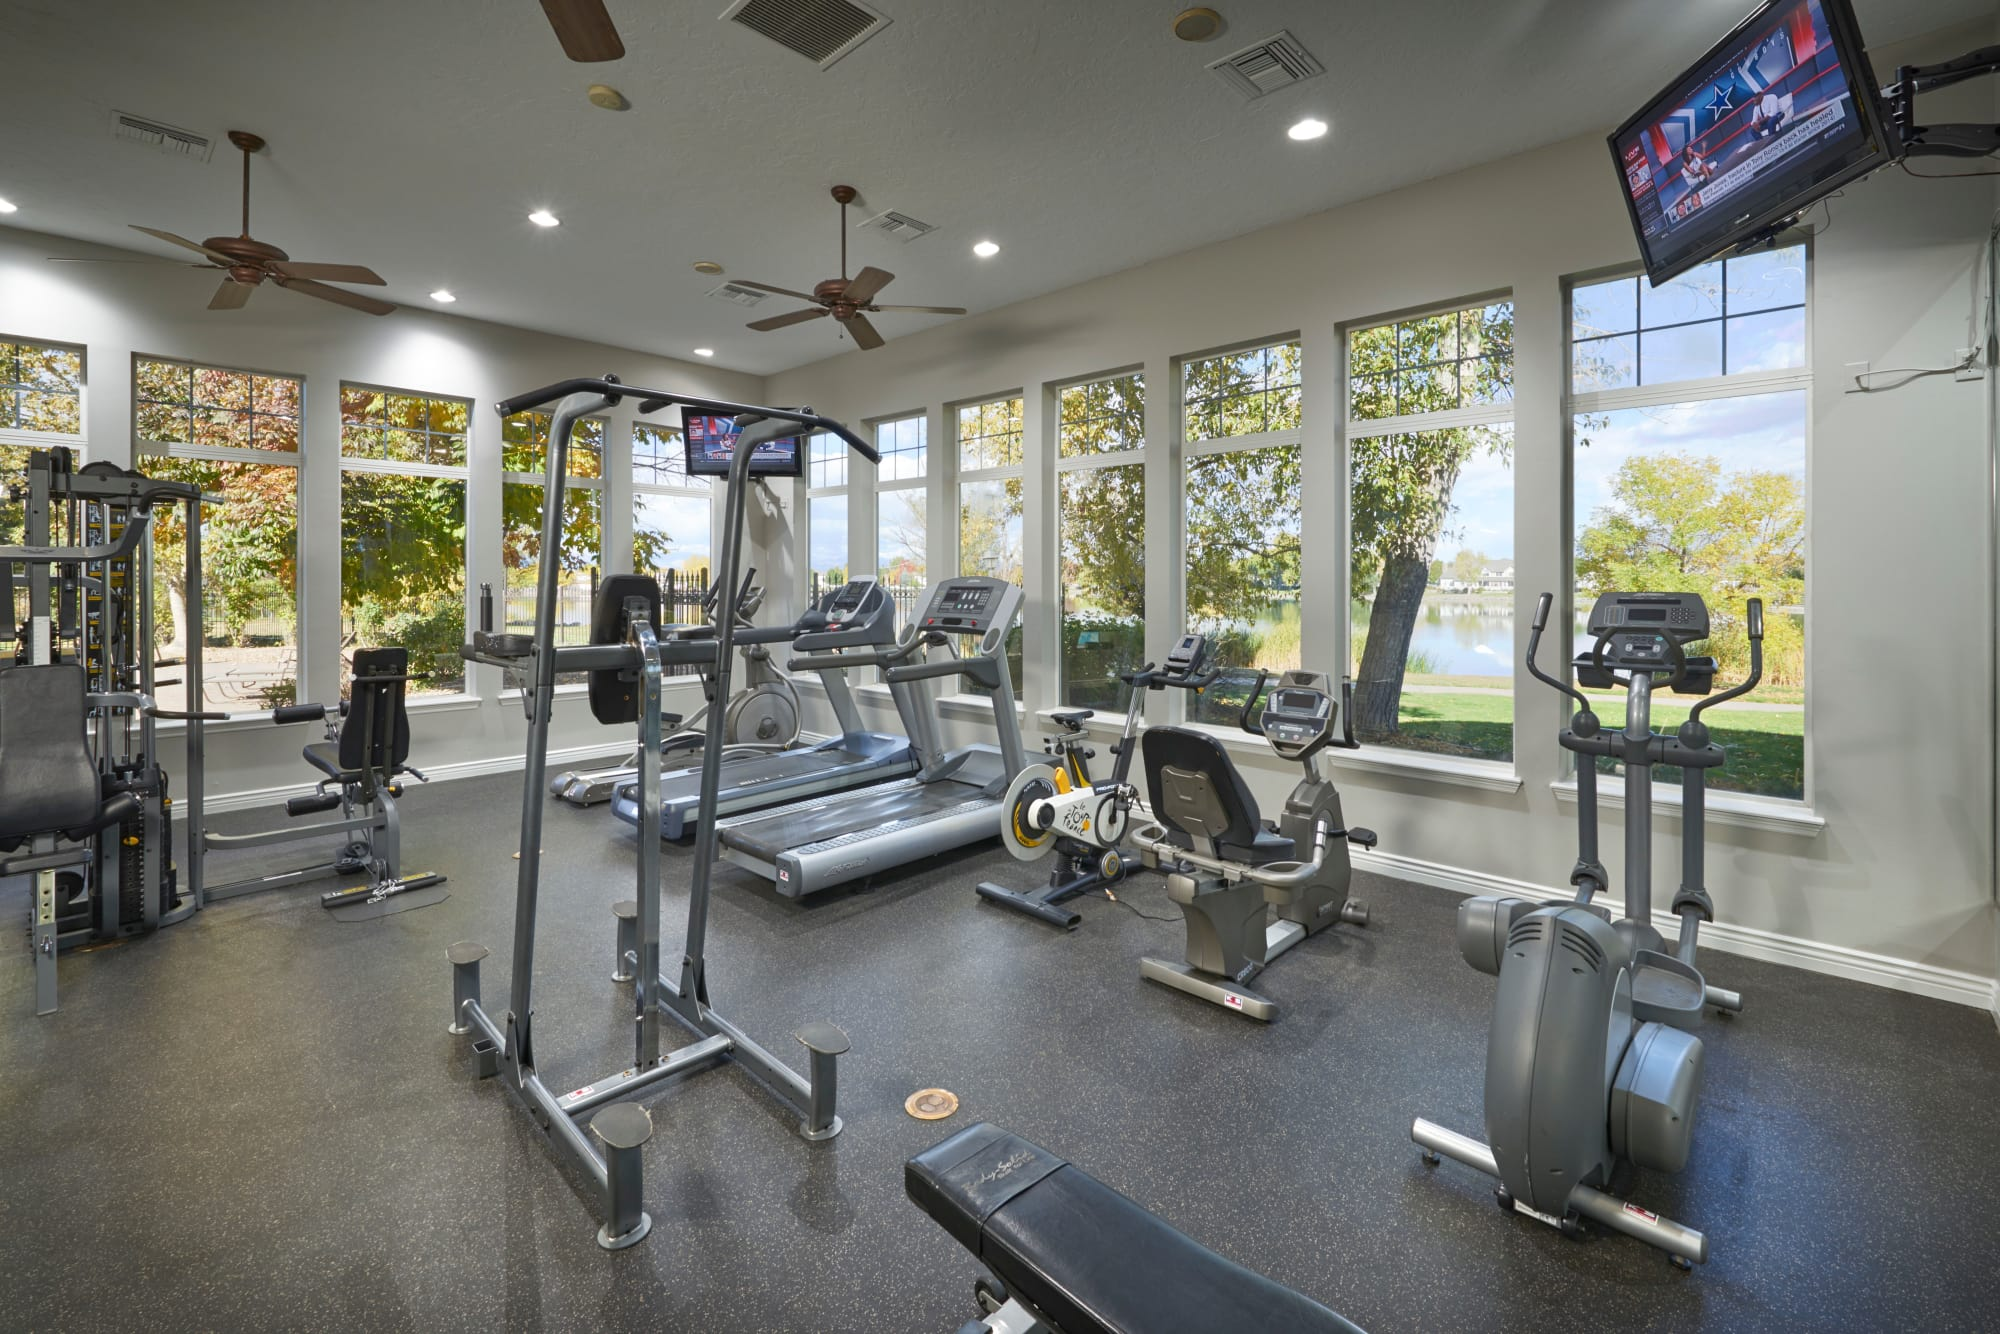 Fully equipped fitness center with lake views